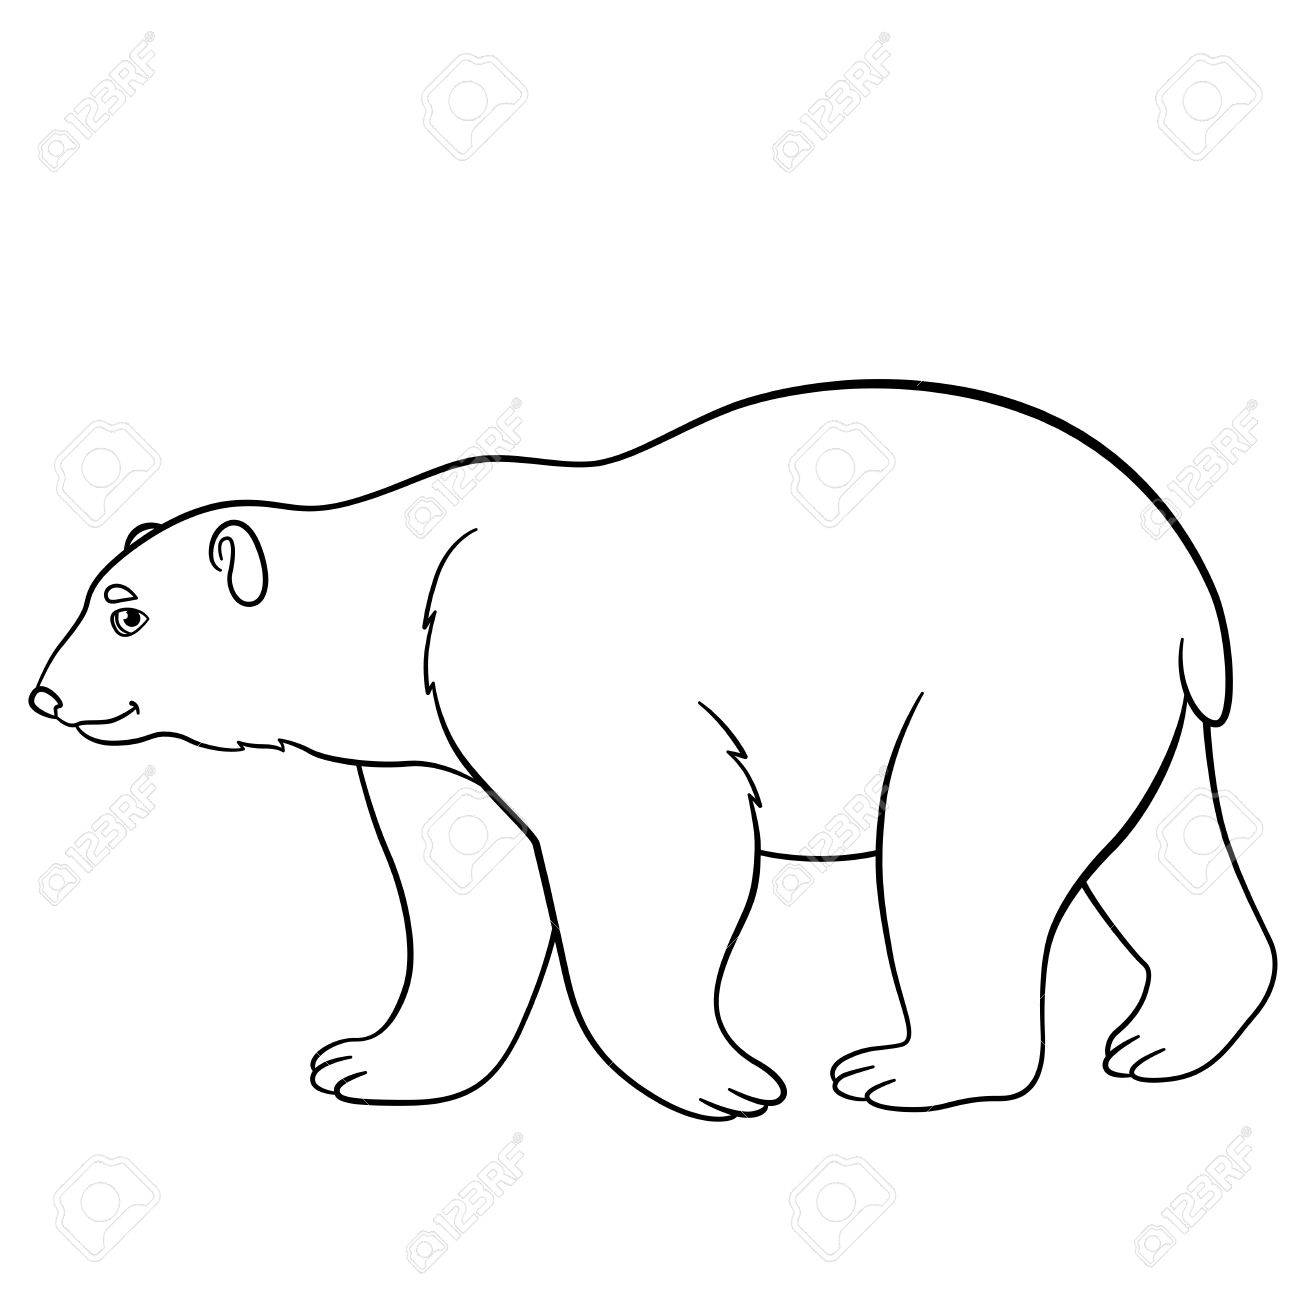 Coloring Pages. Cute Polar Bear Walks And Smiles. Royalty Free ...